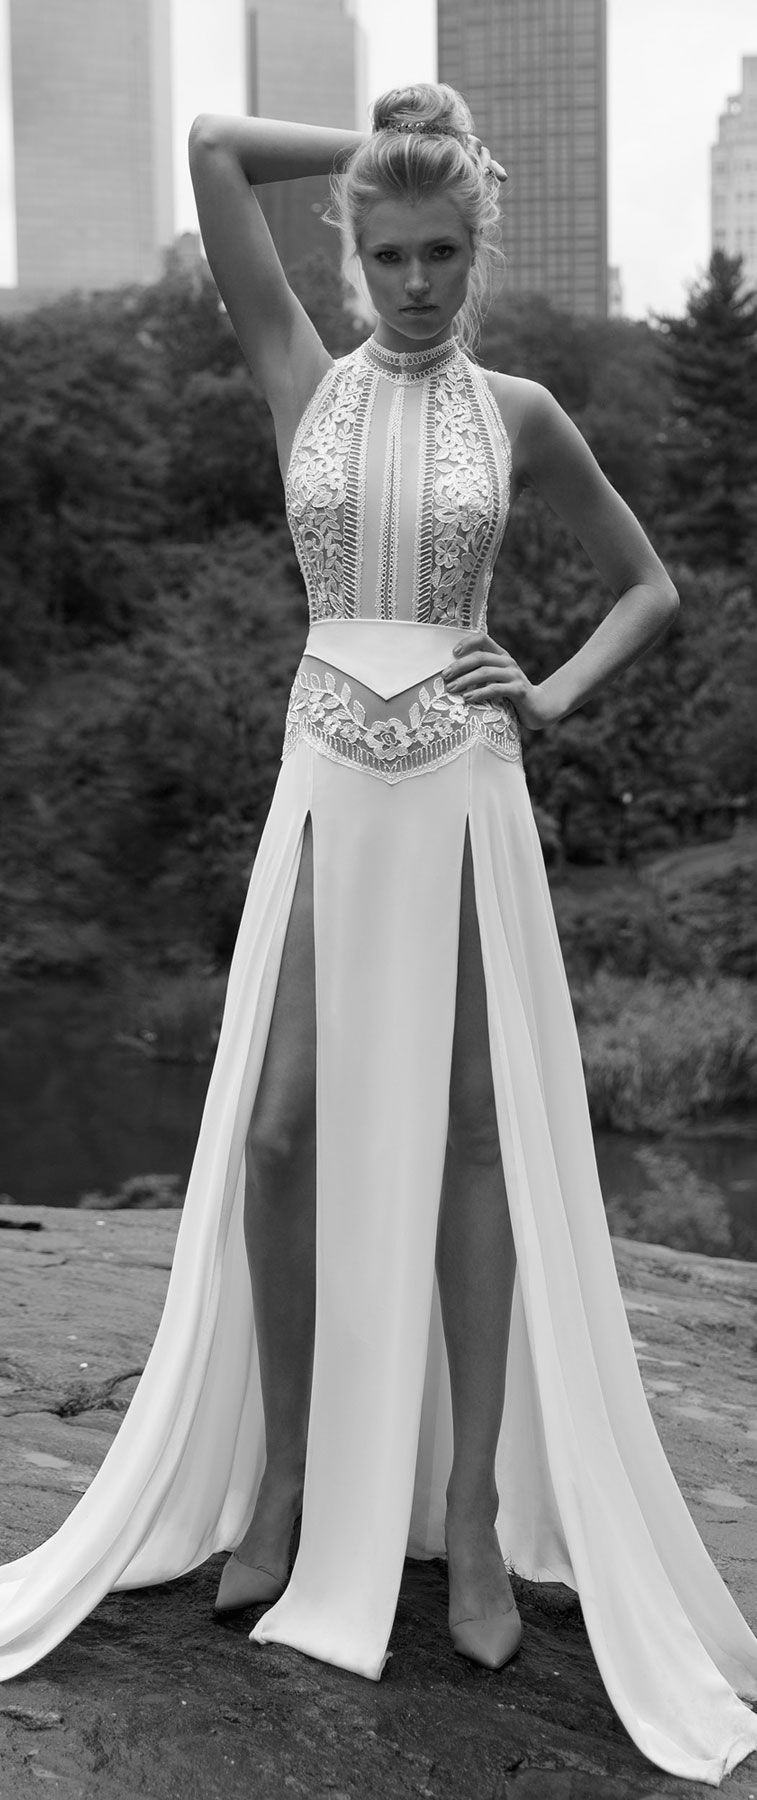 Lior Charchy NYC 2017 bridal halter neck sleeveless fully embellishment top sexy a line wedding dress with front legs cut : Lior Charchy 2017 Wedding Dresses #weddingdress #wedding #weddingdresses